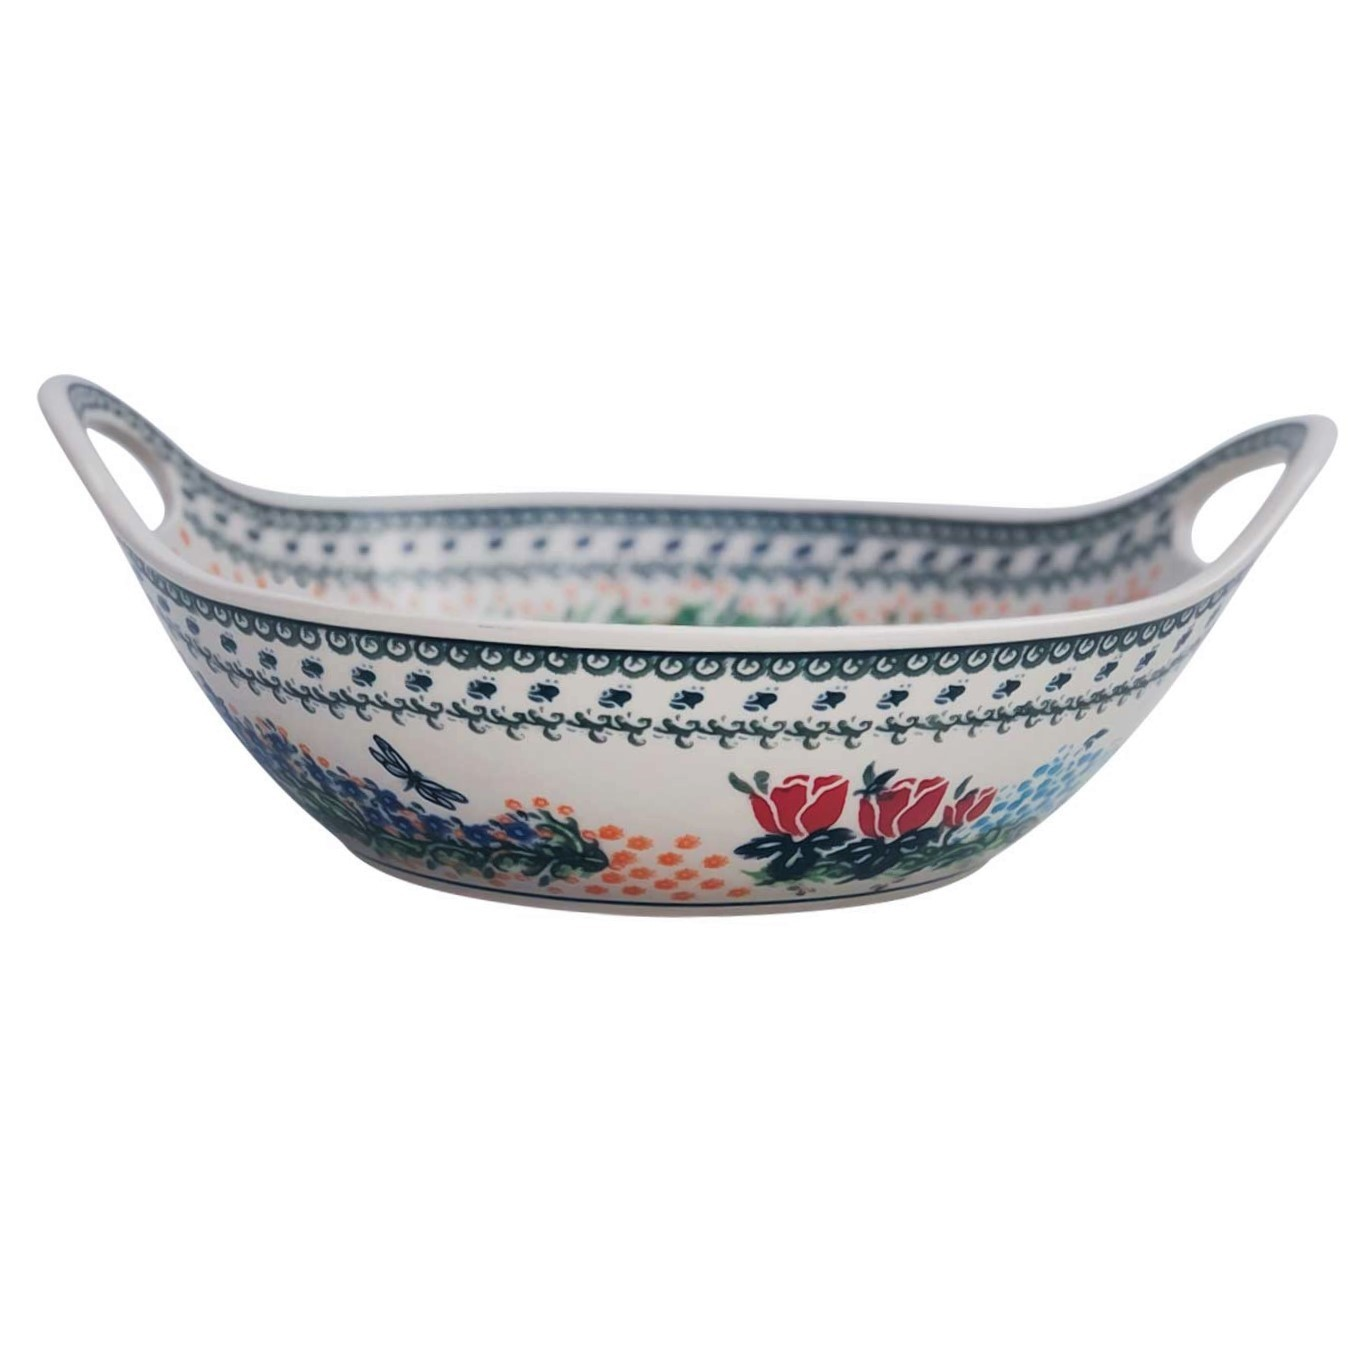 "Pottery Avenue 13"" Handled Stoneware Baker-Serving Bowl - 1347-DU154"